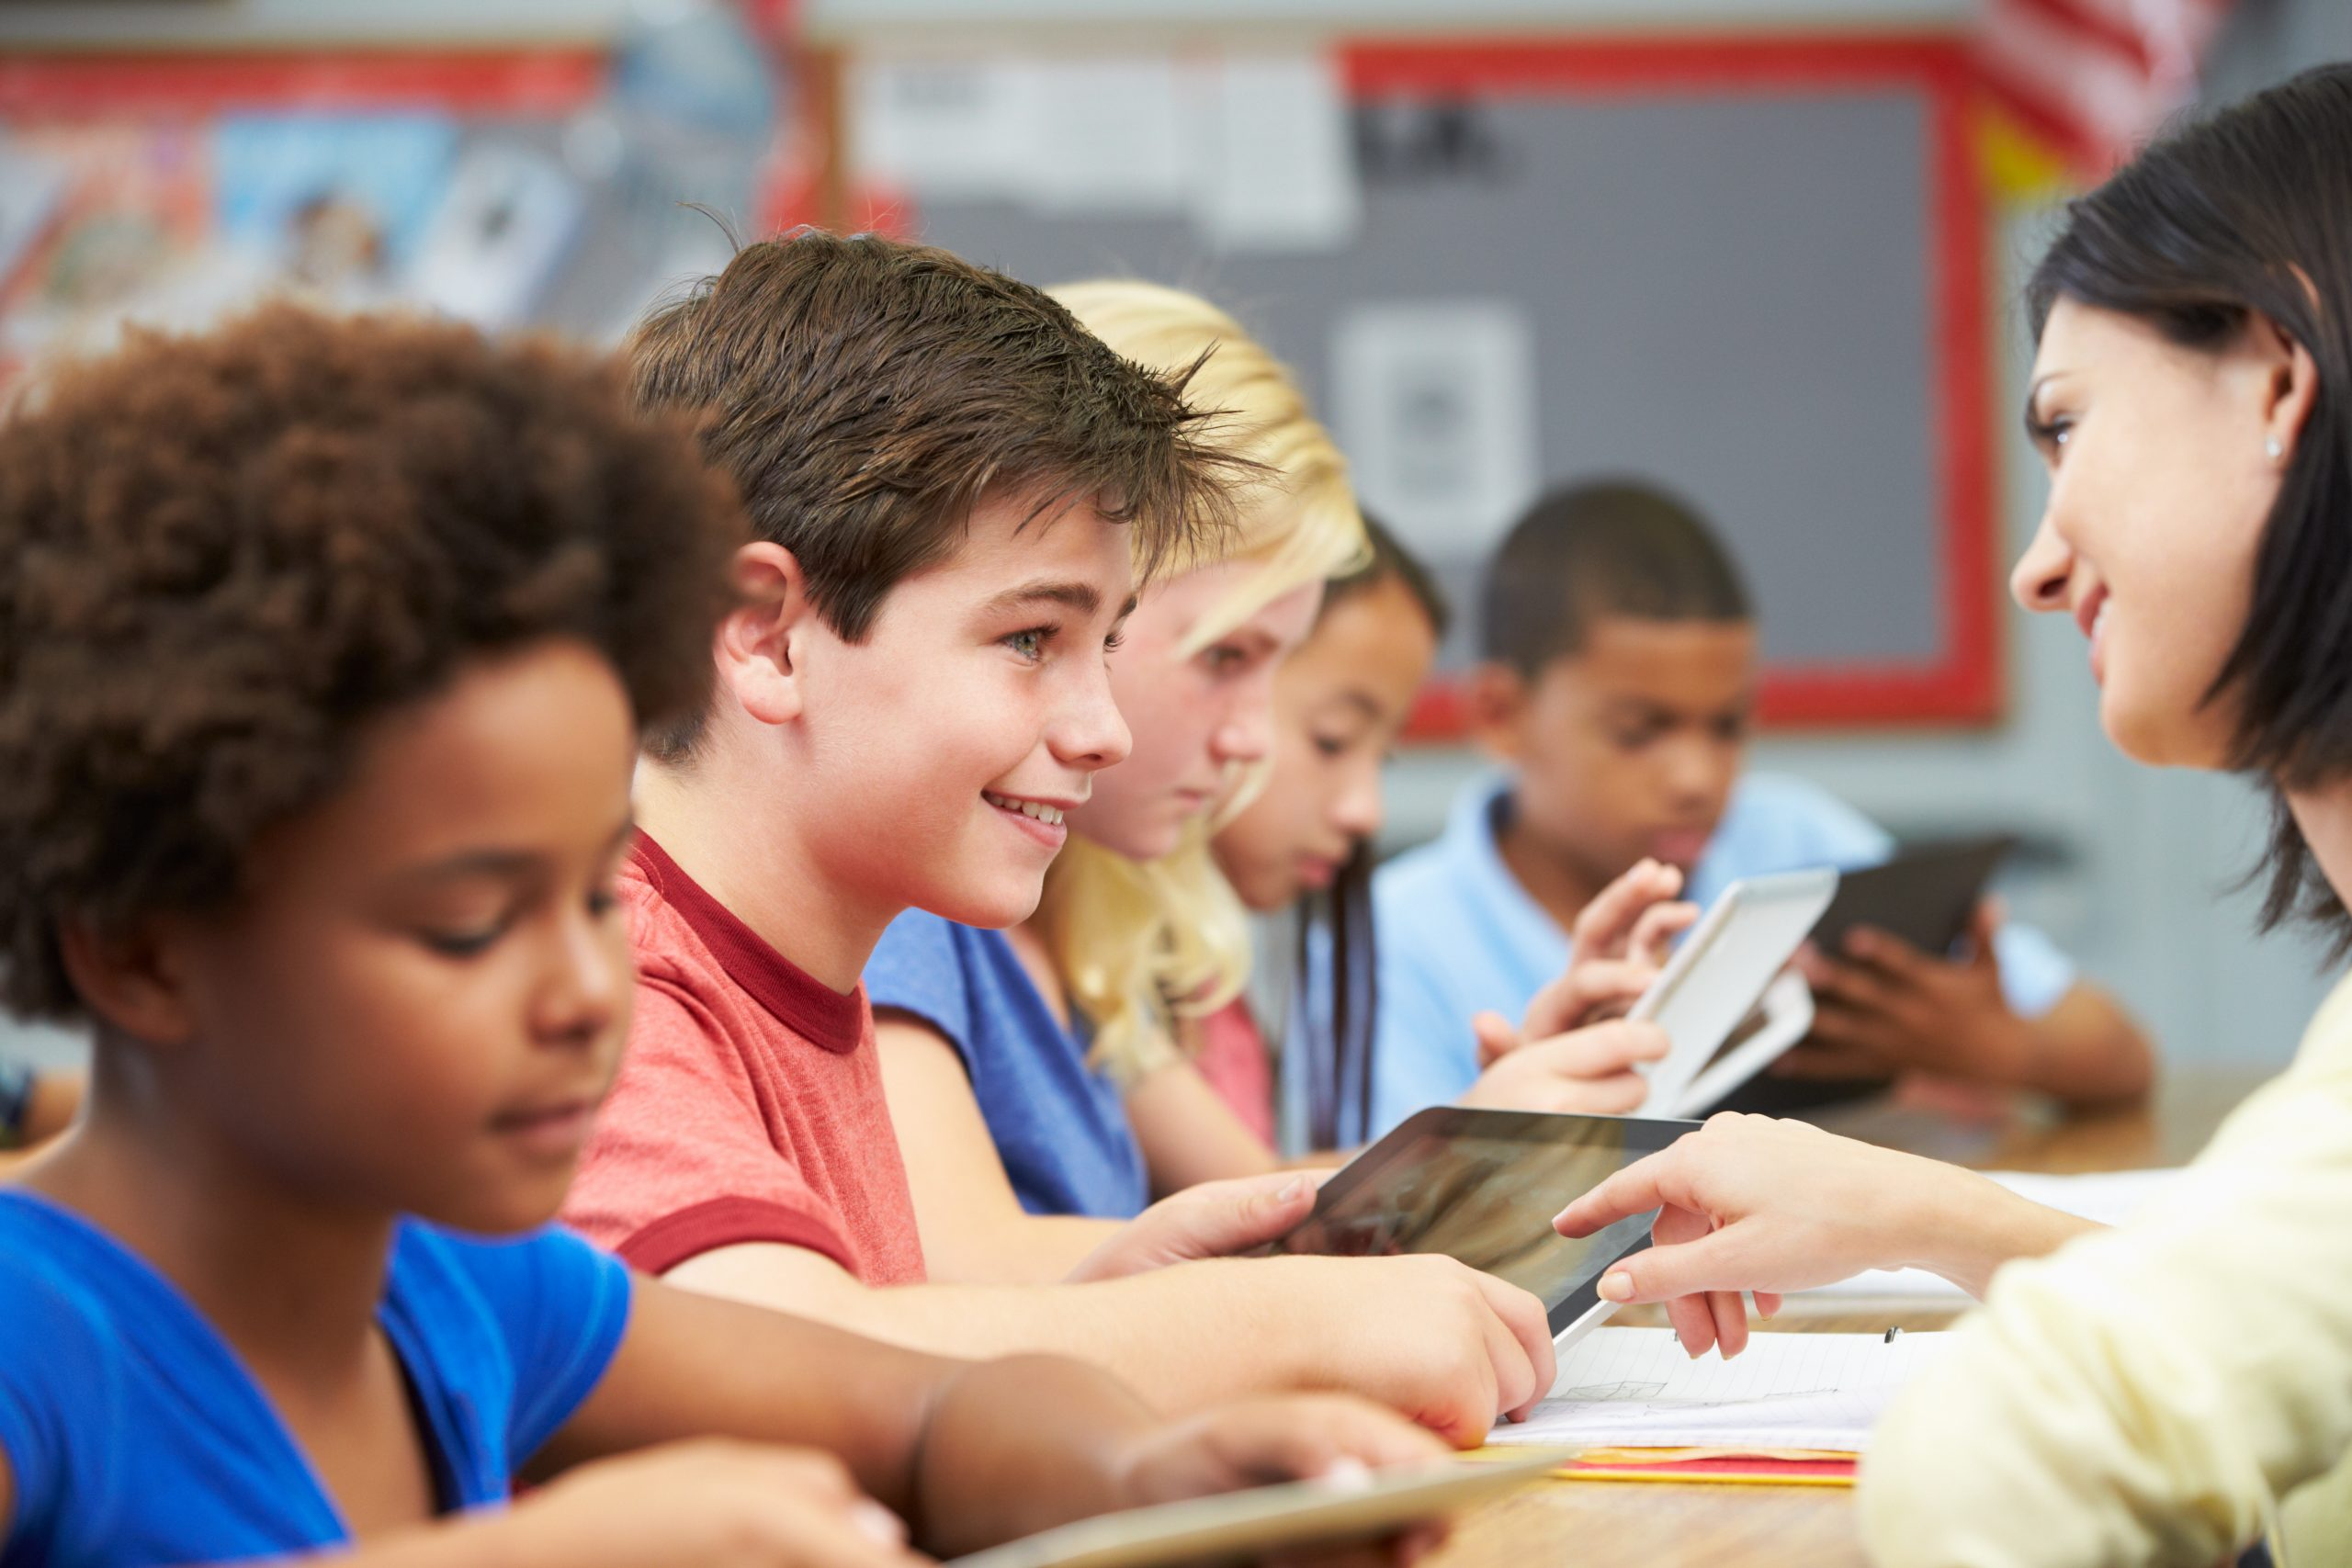 Is technology disrupting performance school wifi and tablets can hinder student learning